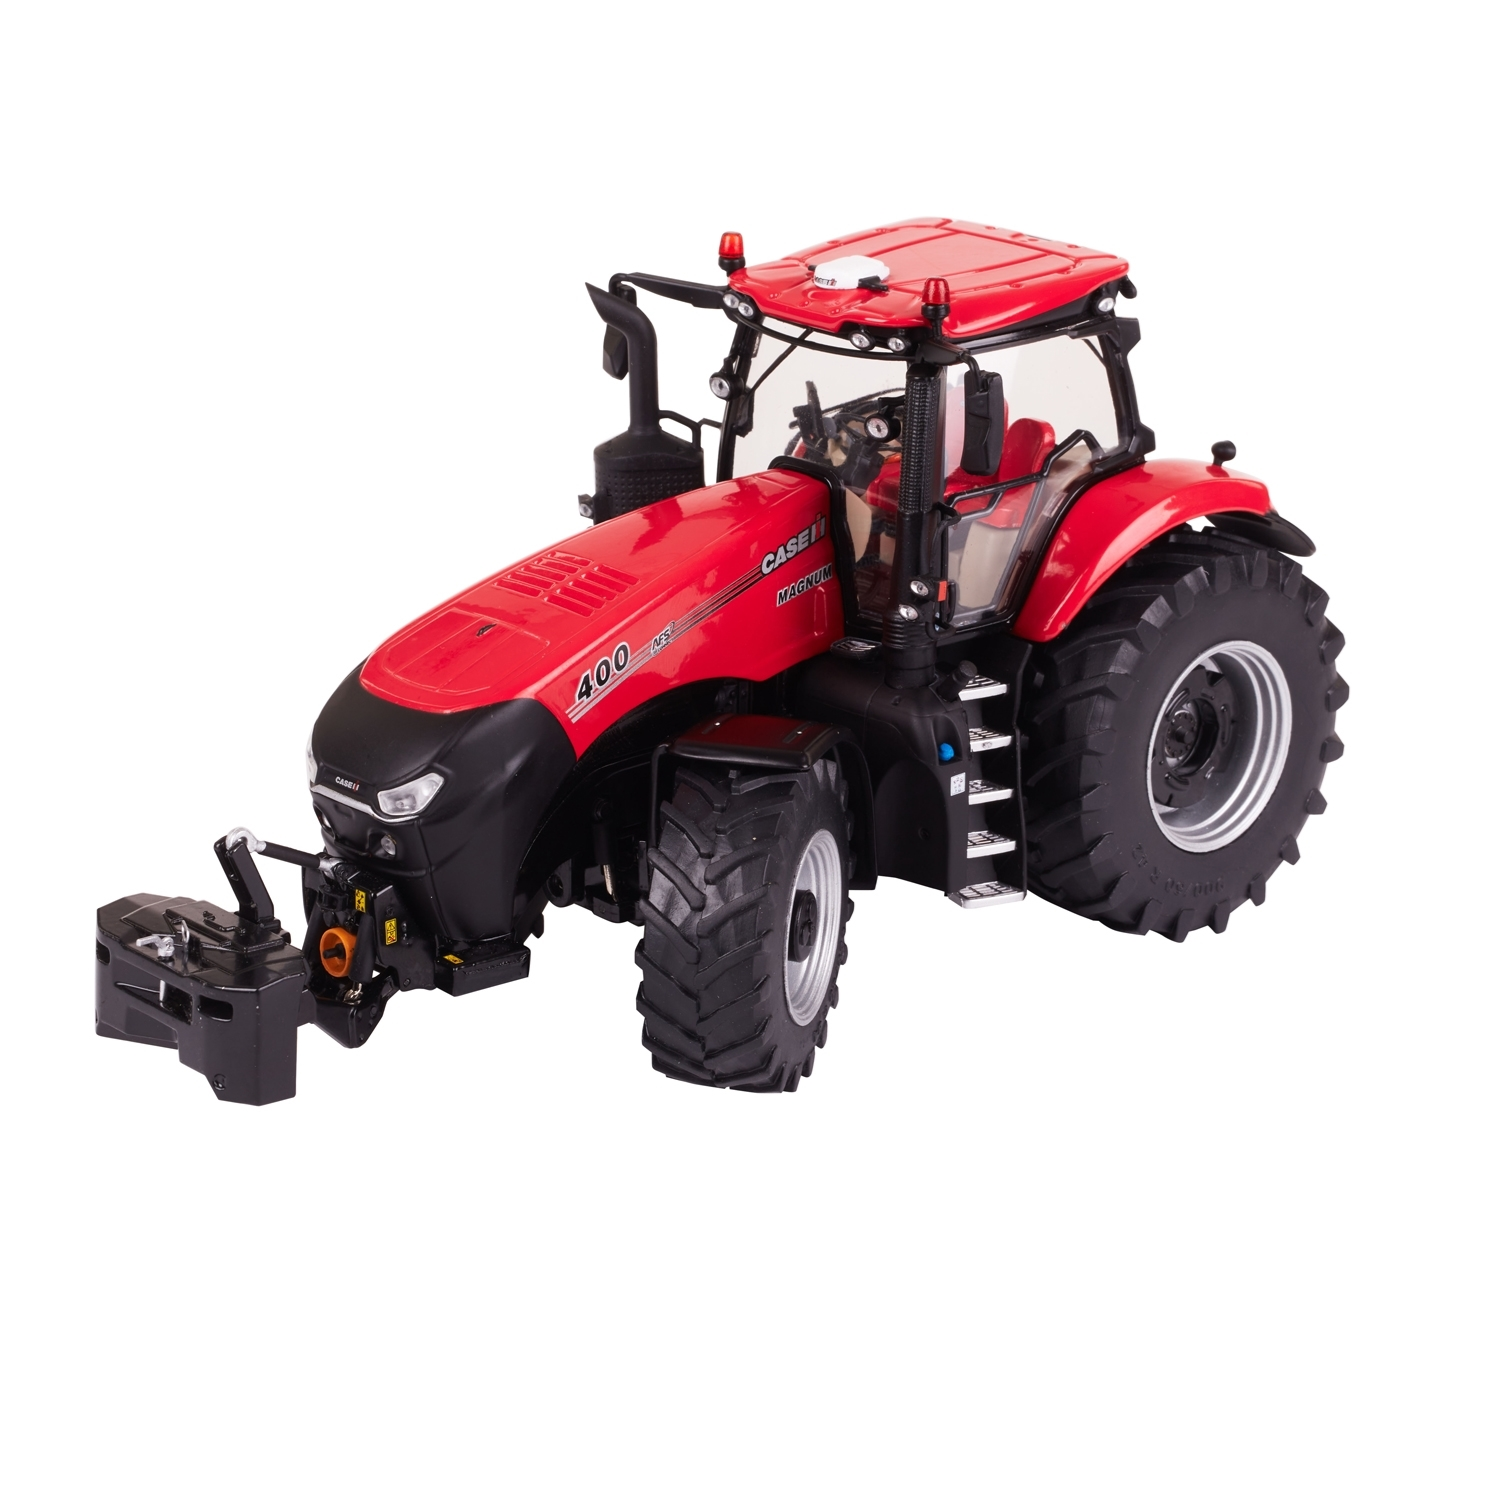 Model Case IH Magnum 400 1:32